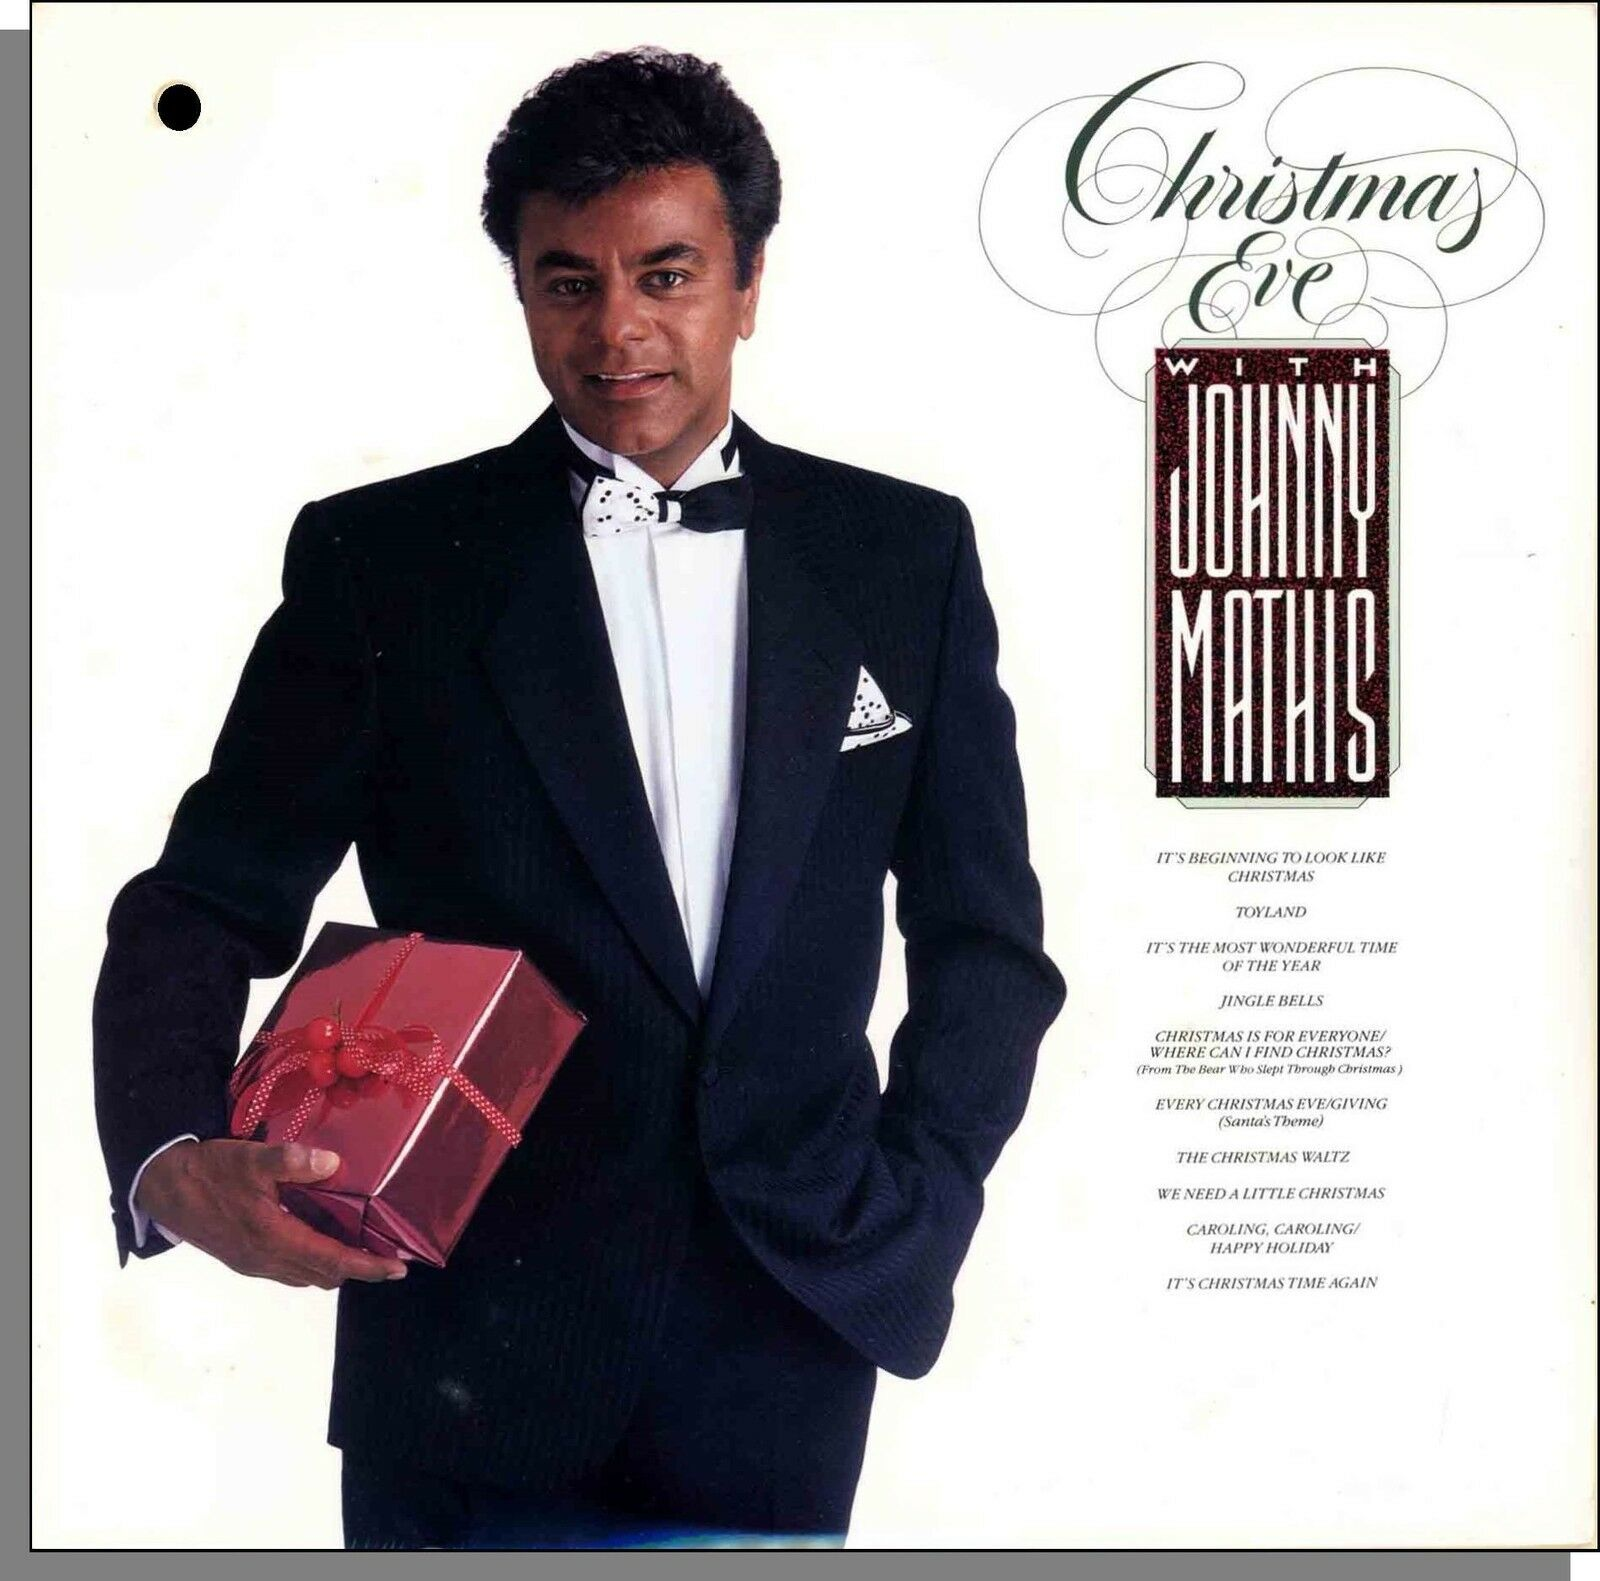 JOHNNY MATHIS - Christmas Eve With Johnny Mathis - New 1986 LP ...